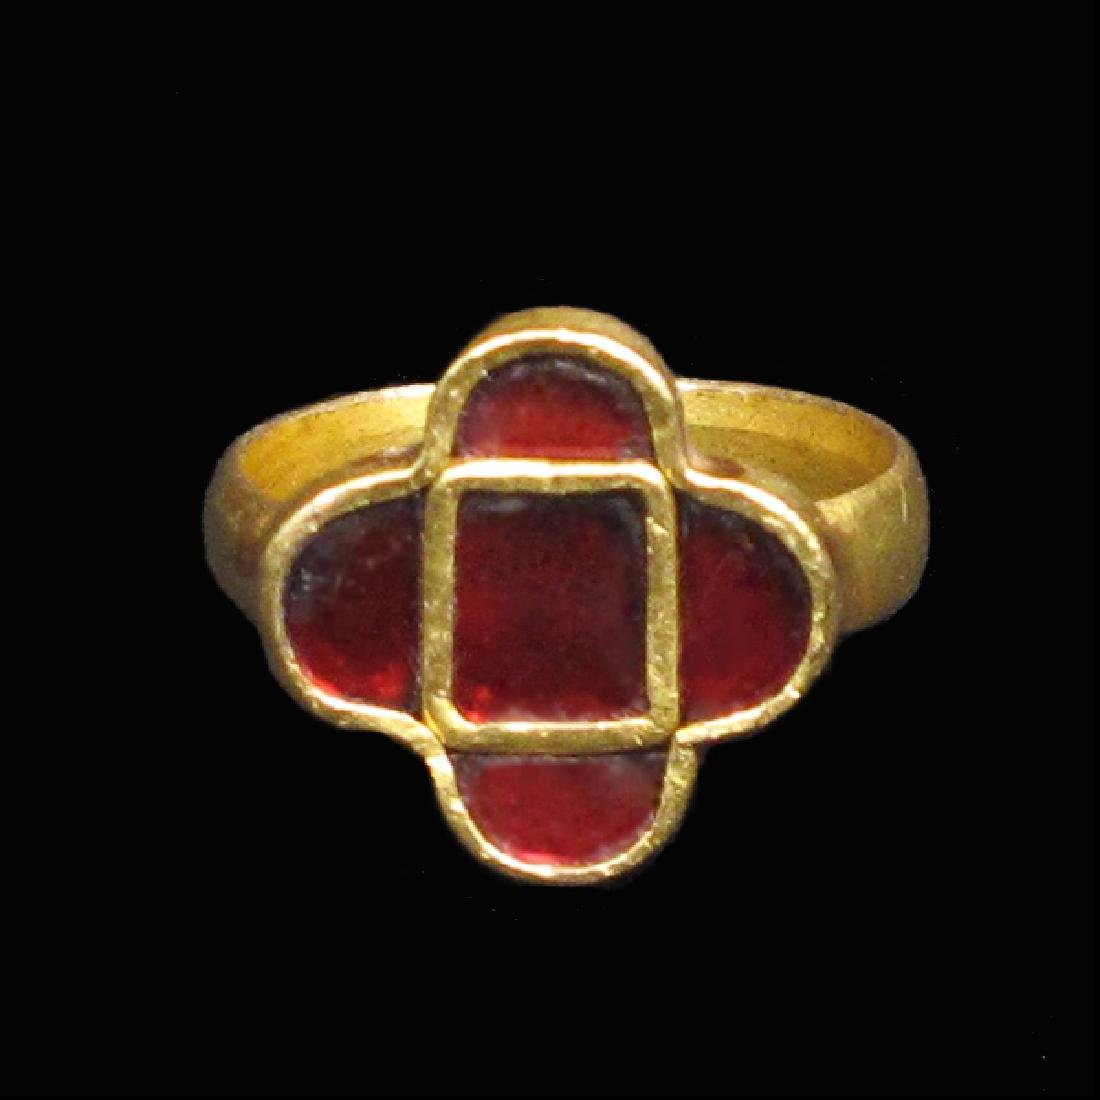 Gothic Gold Ring with Garnets, c. 5th Century AD